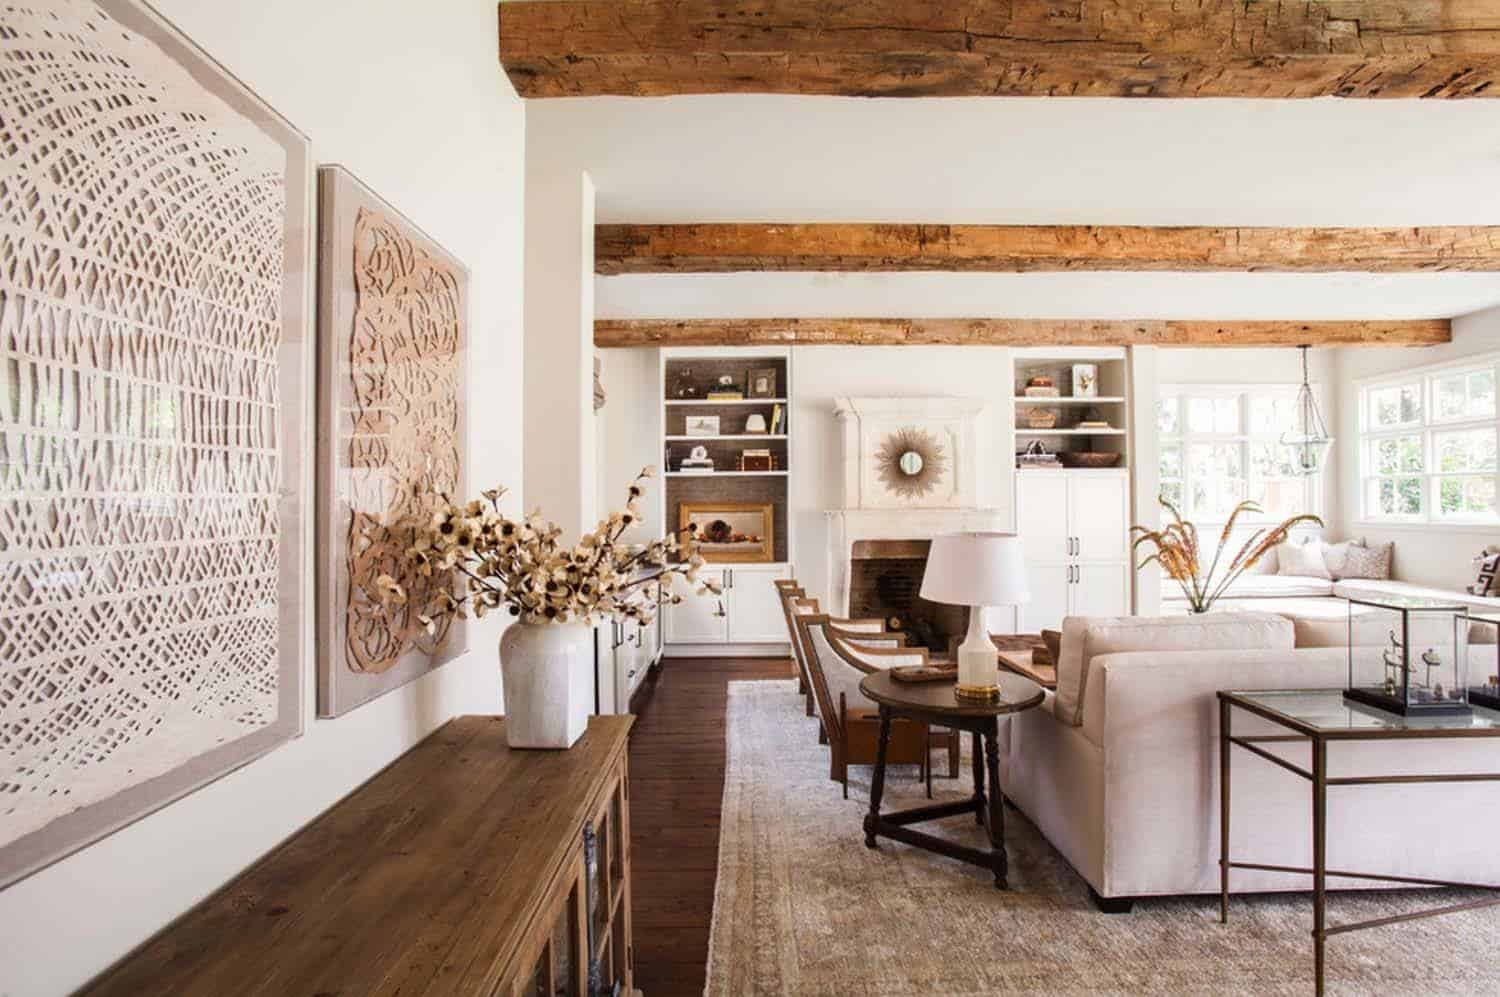 Midcentury Colonial Home-Marie Flanigan Interiors-04-1 Kindesign